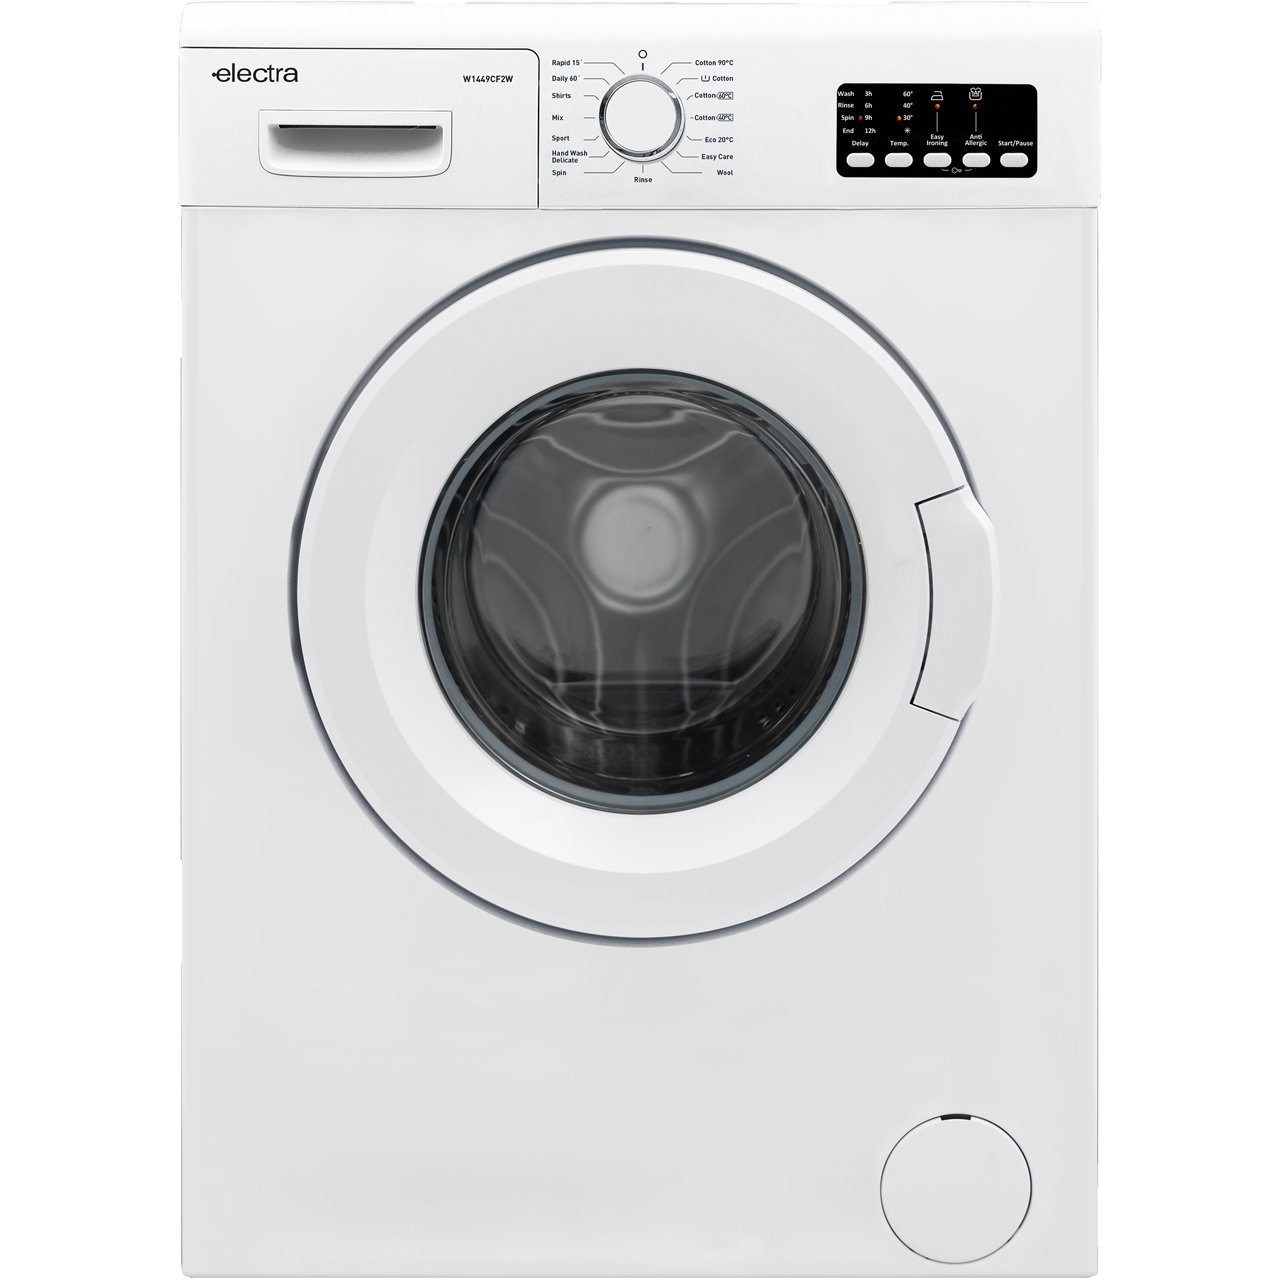 Bosch WAN28050GB A+++ Rated Freestanding Washing Machine,7kg